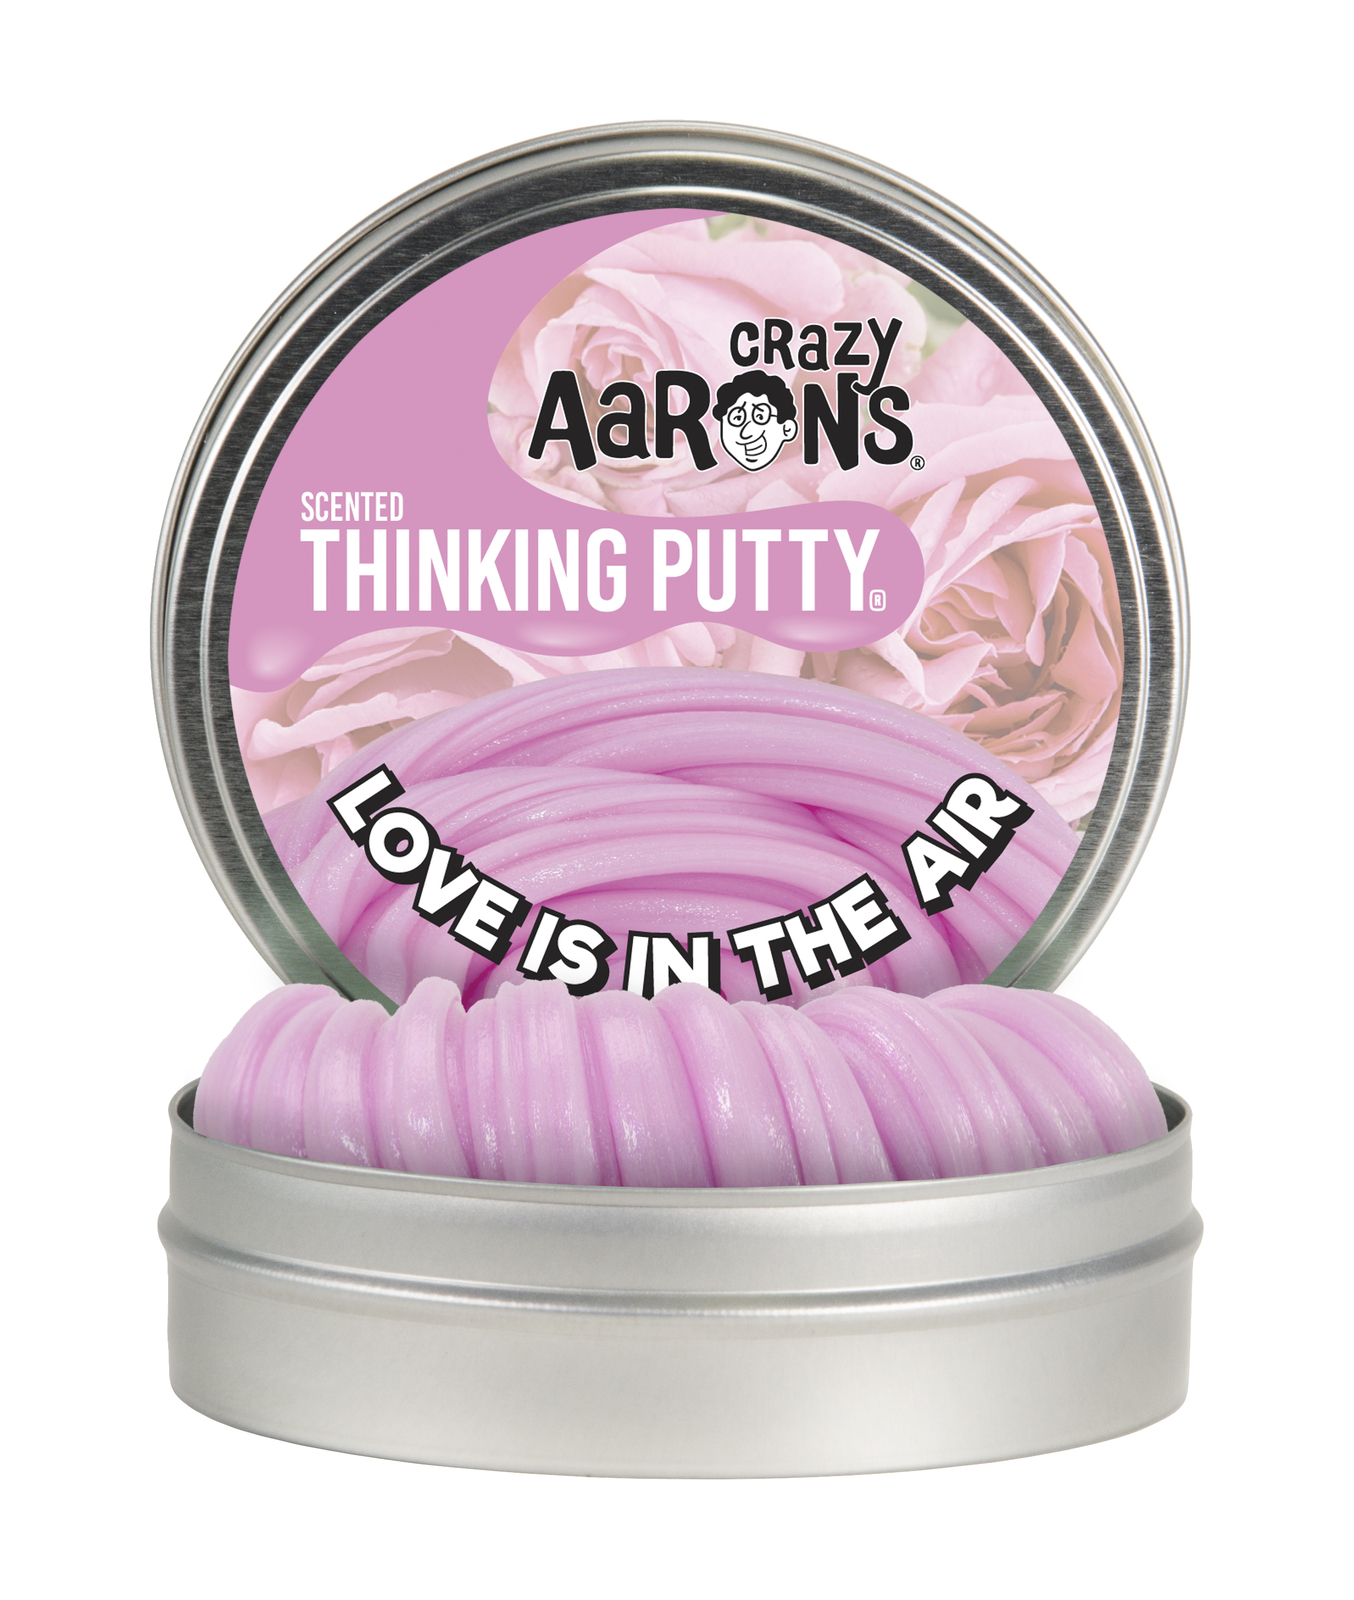 Crazy Aarons: Thinking Putty - Love is in the Air image